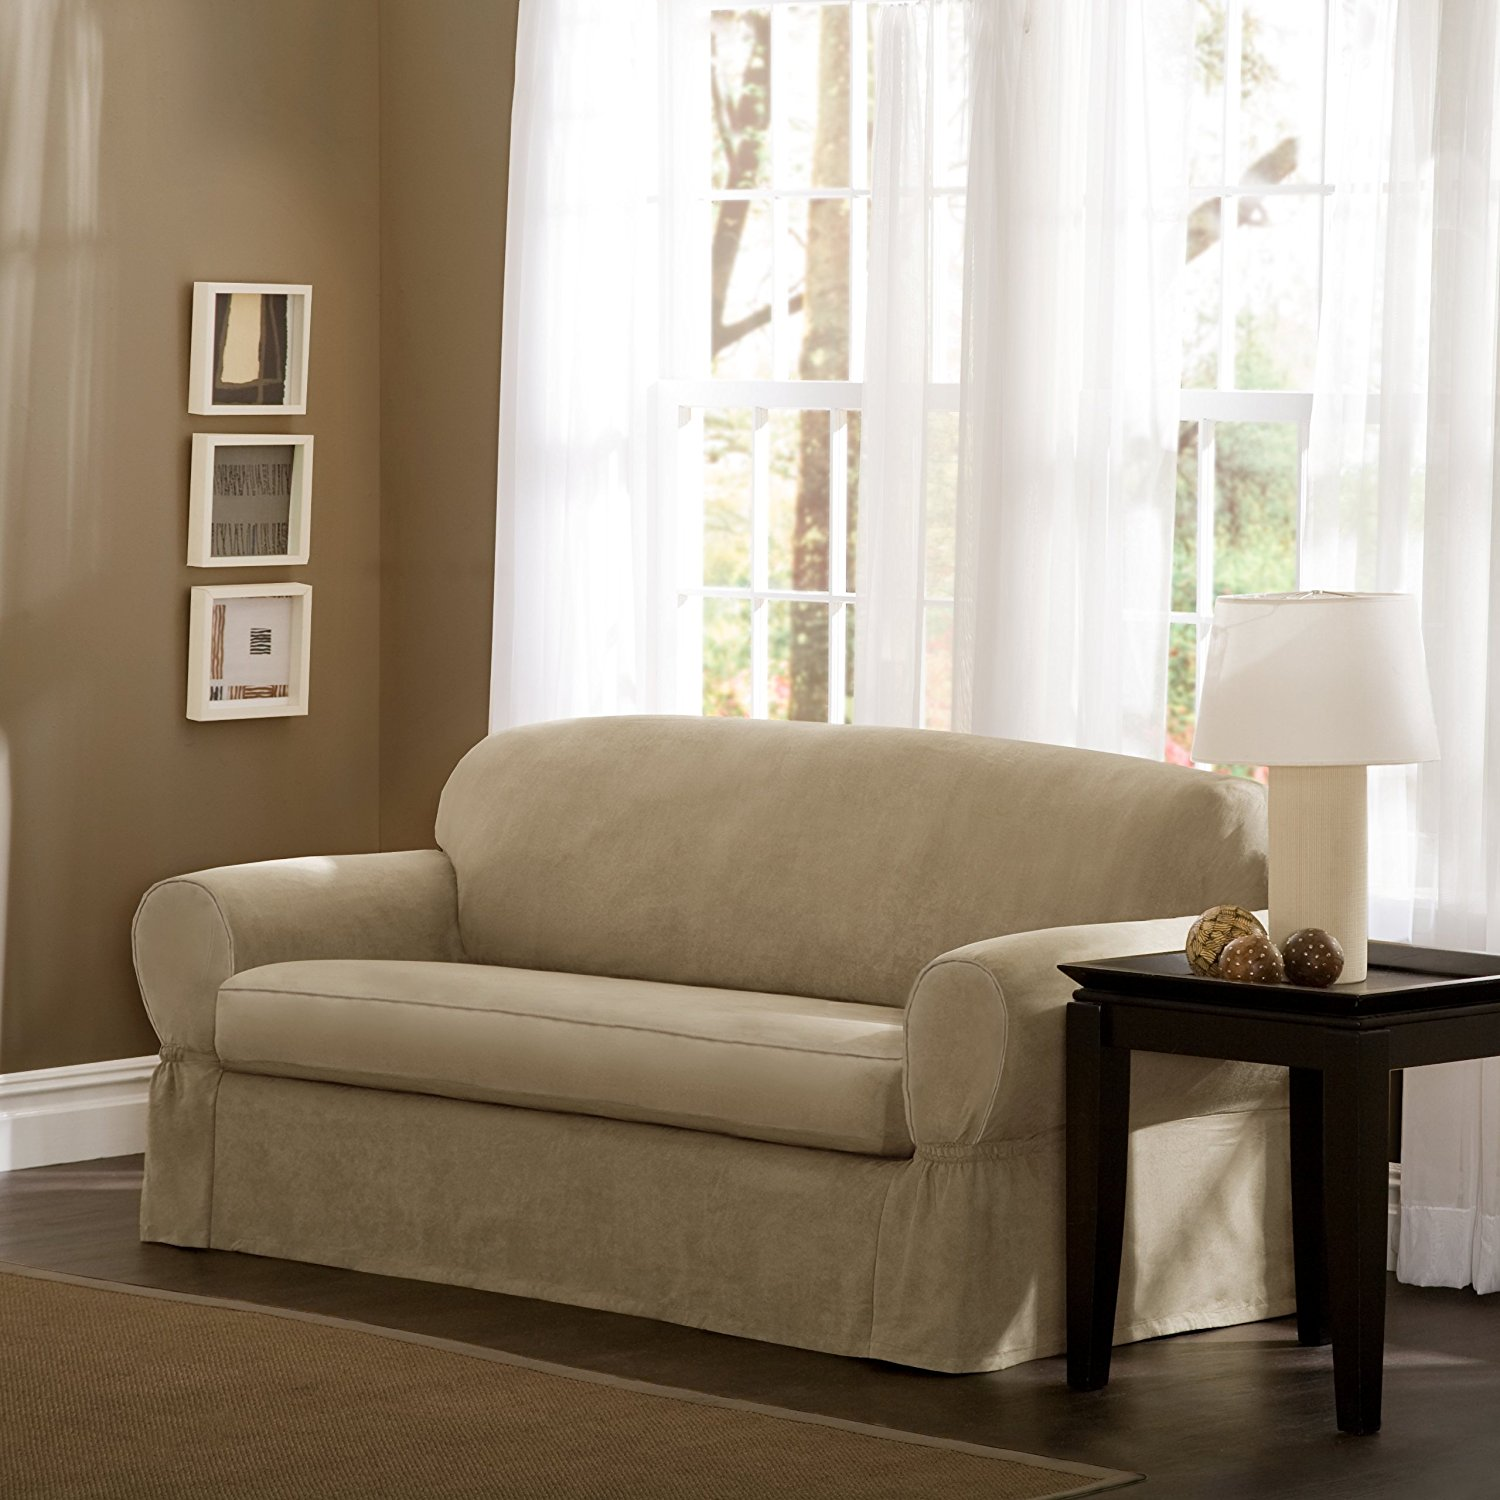 Linen Couch Slipcovers | Sofa Slip Covers | Slipcovers for Sofas with Cushions Separate